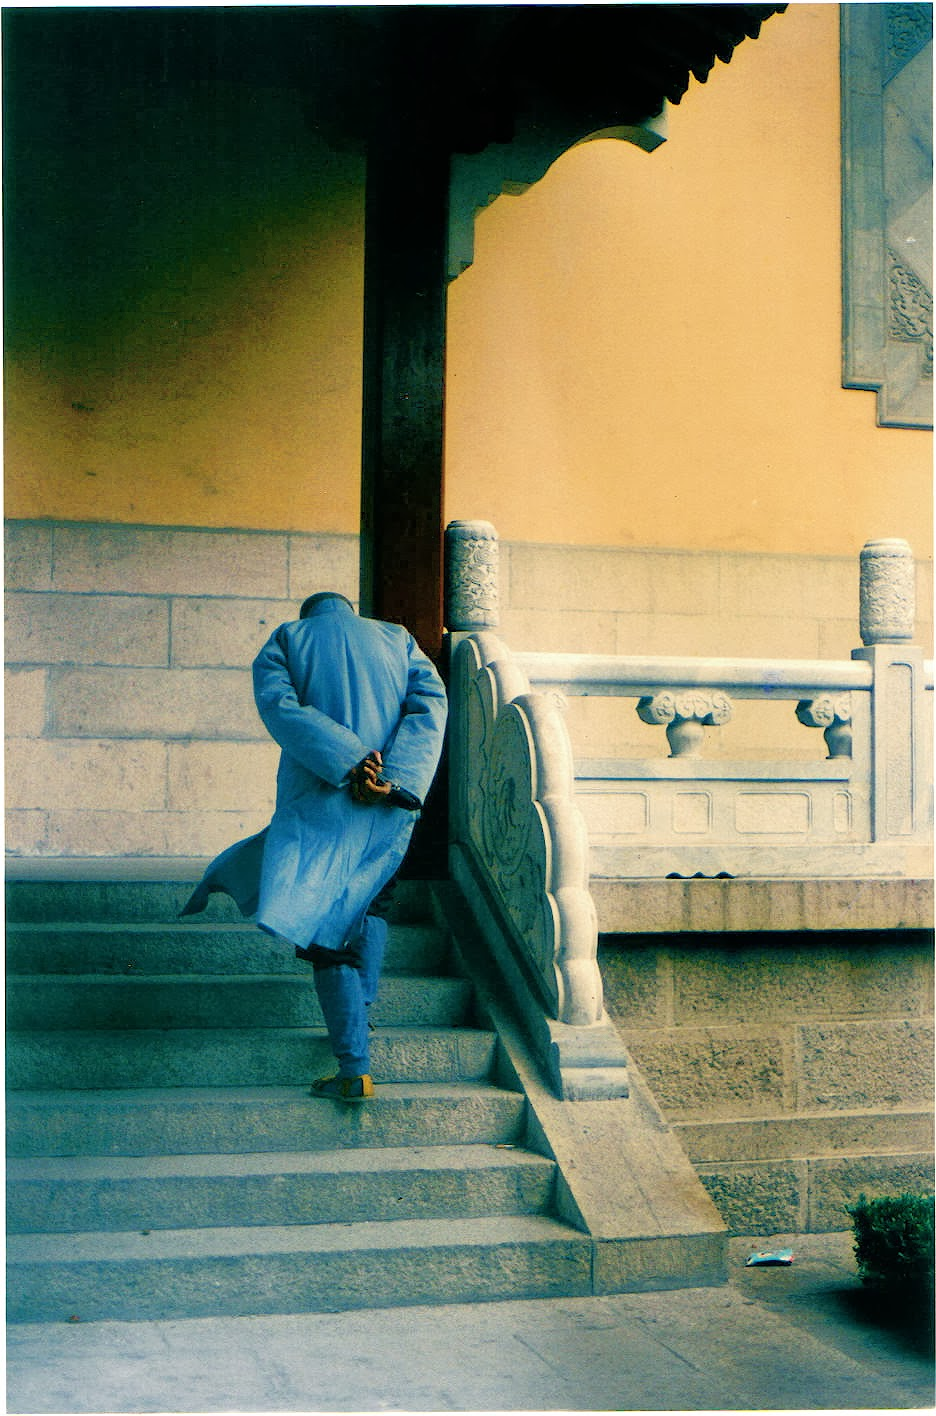 Mindless Monk, Beijing 1989 by Karin Lisa Atkinson